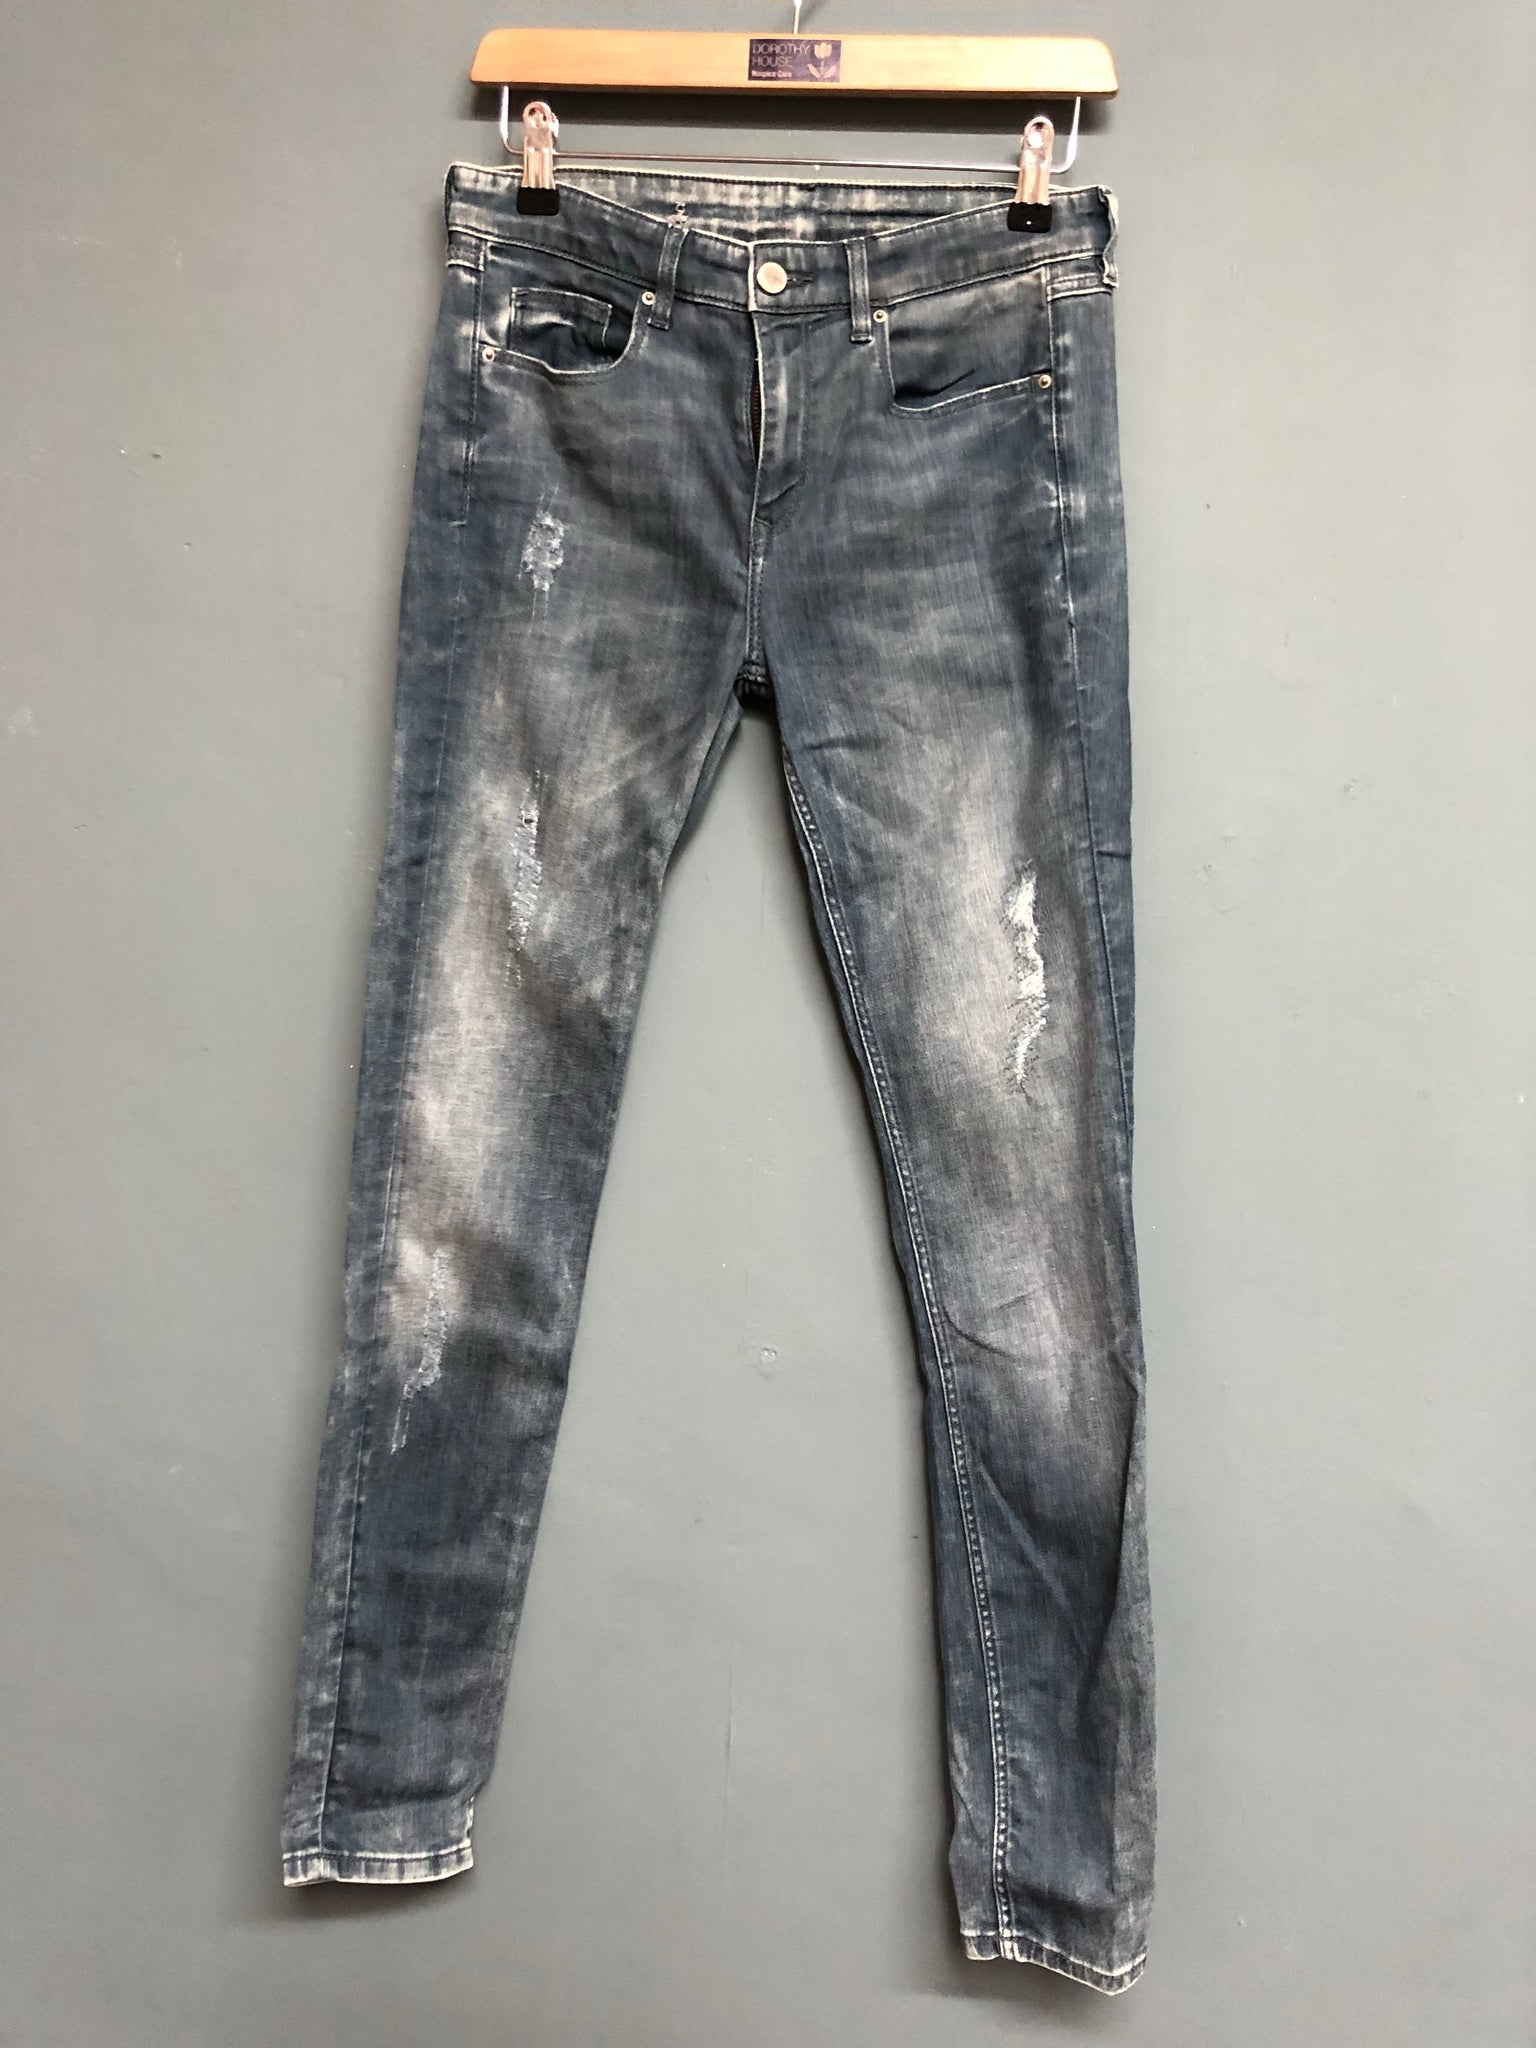 Esprit Denim Skinny Fit Distressed Jeans Size 8